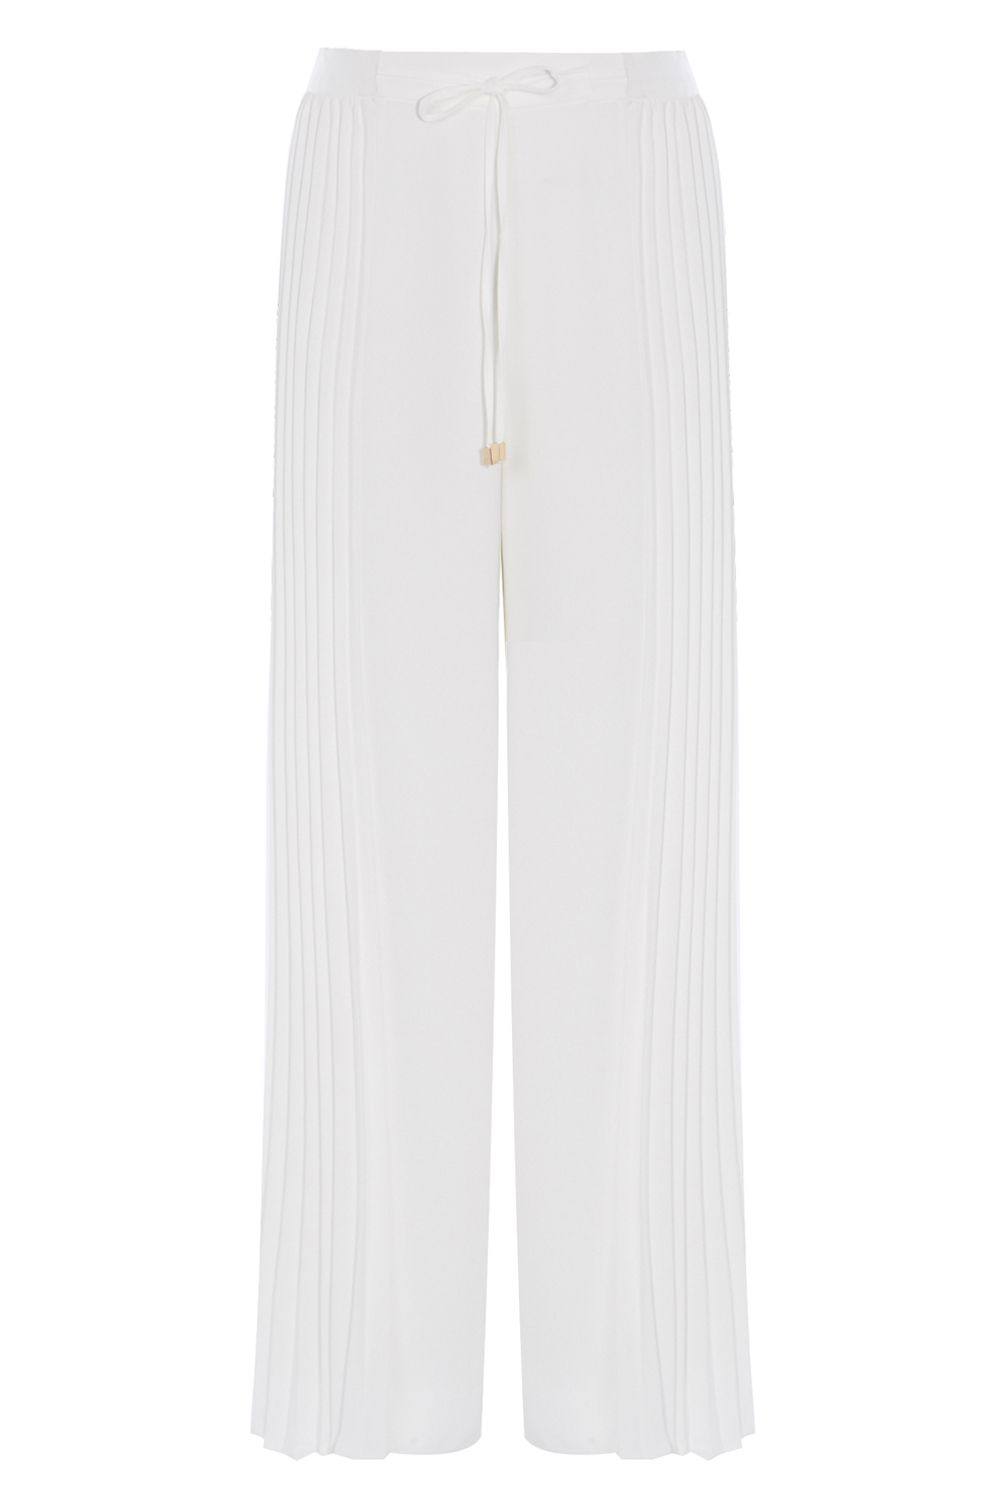 Coast Coast Morocco Pleated Trousers, Ivory